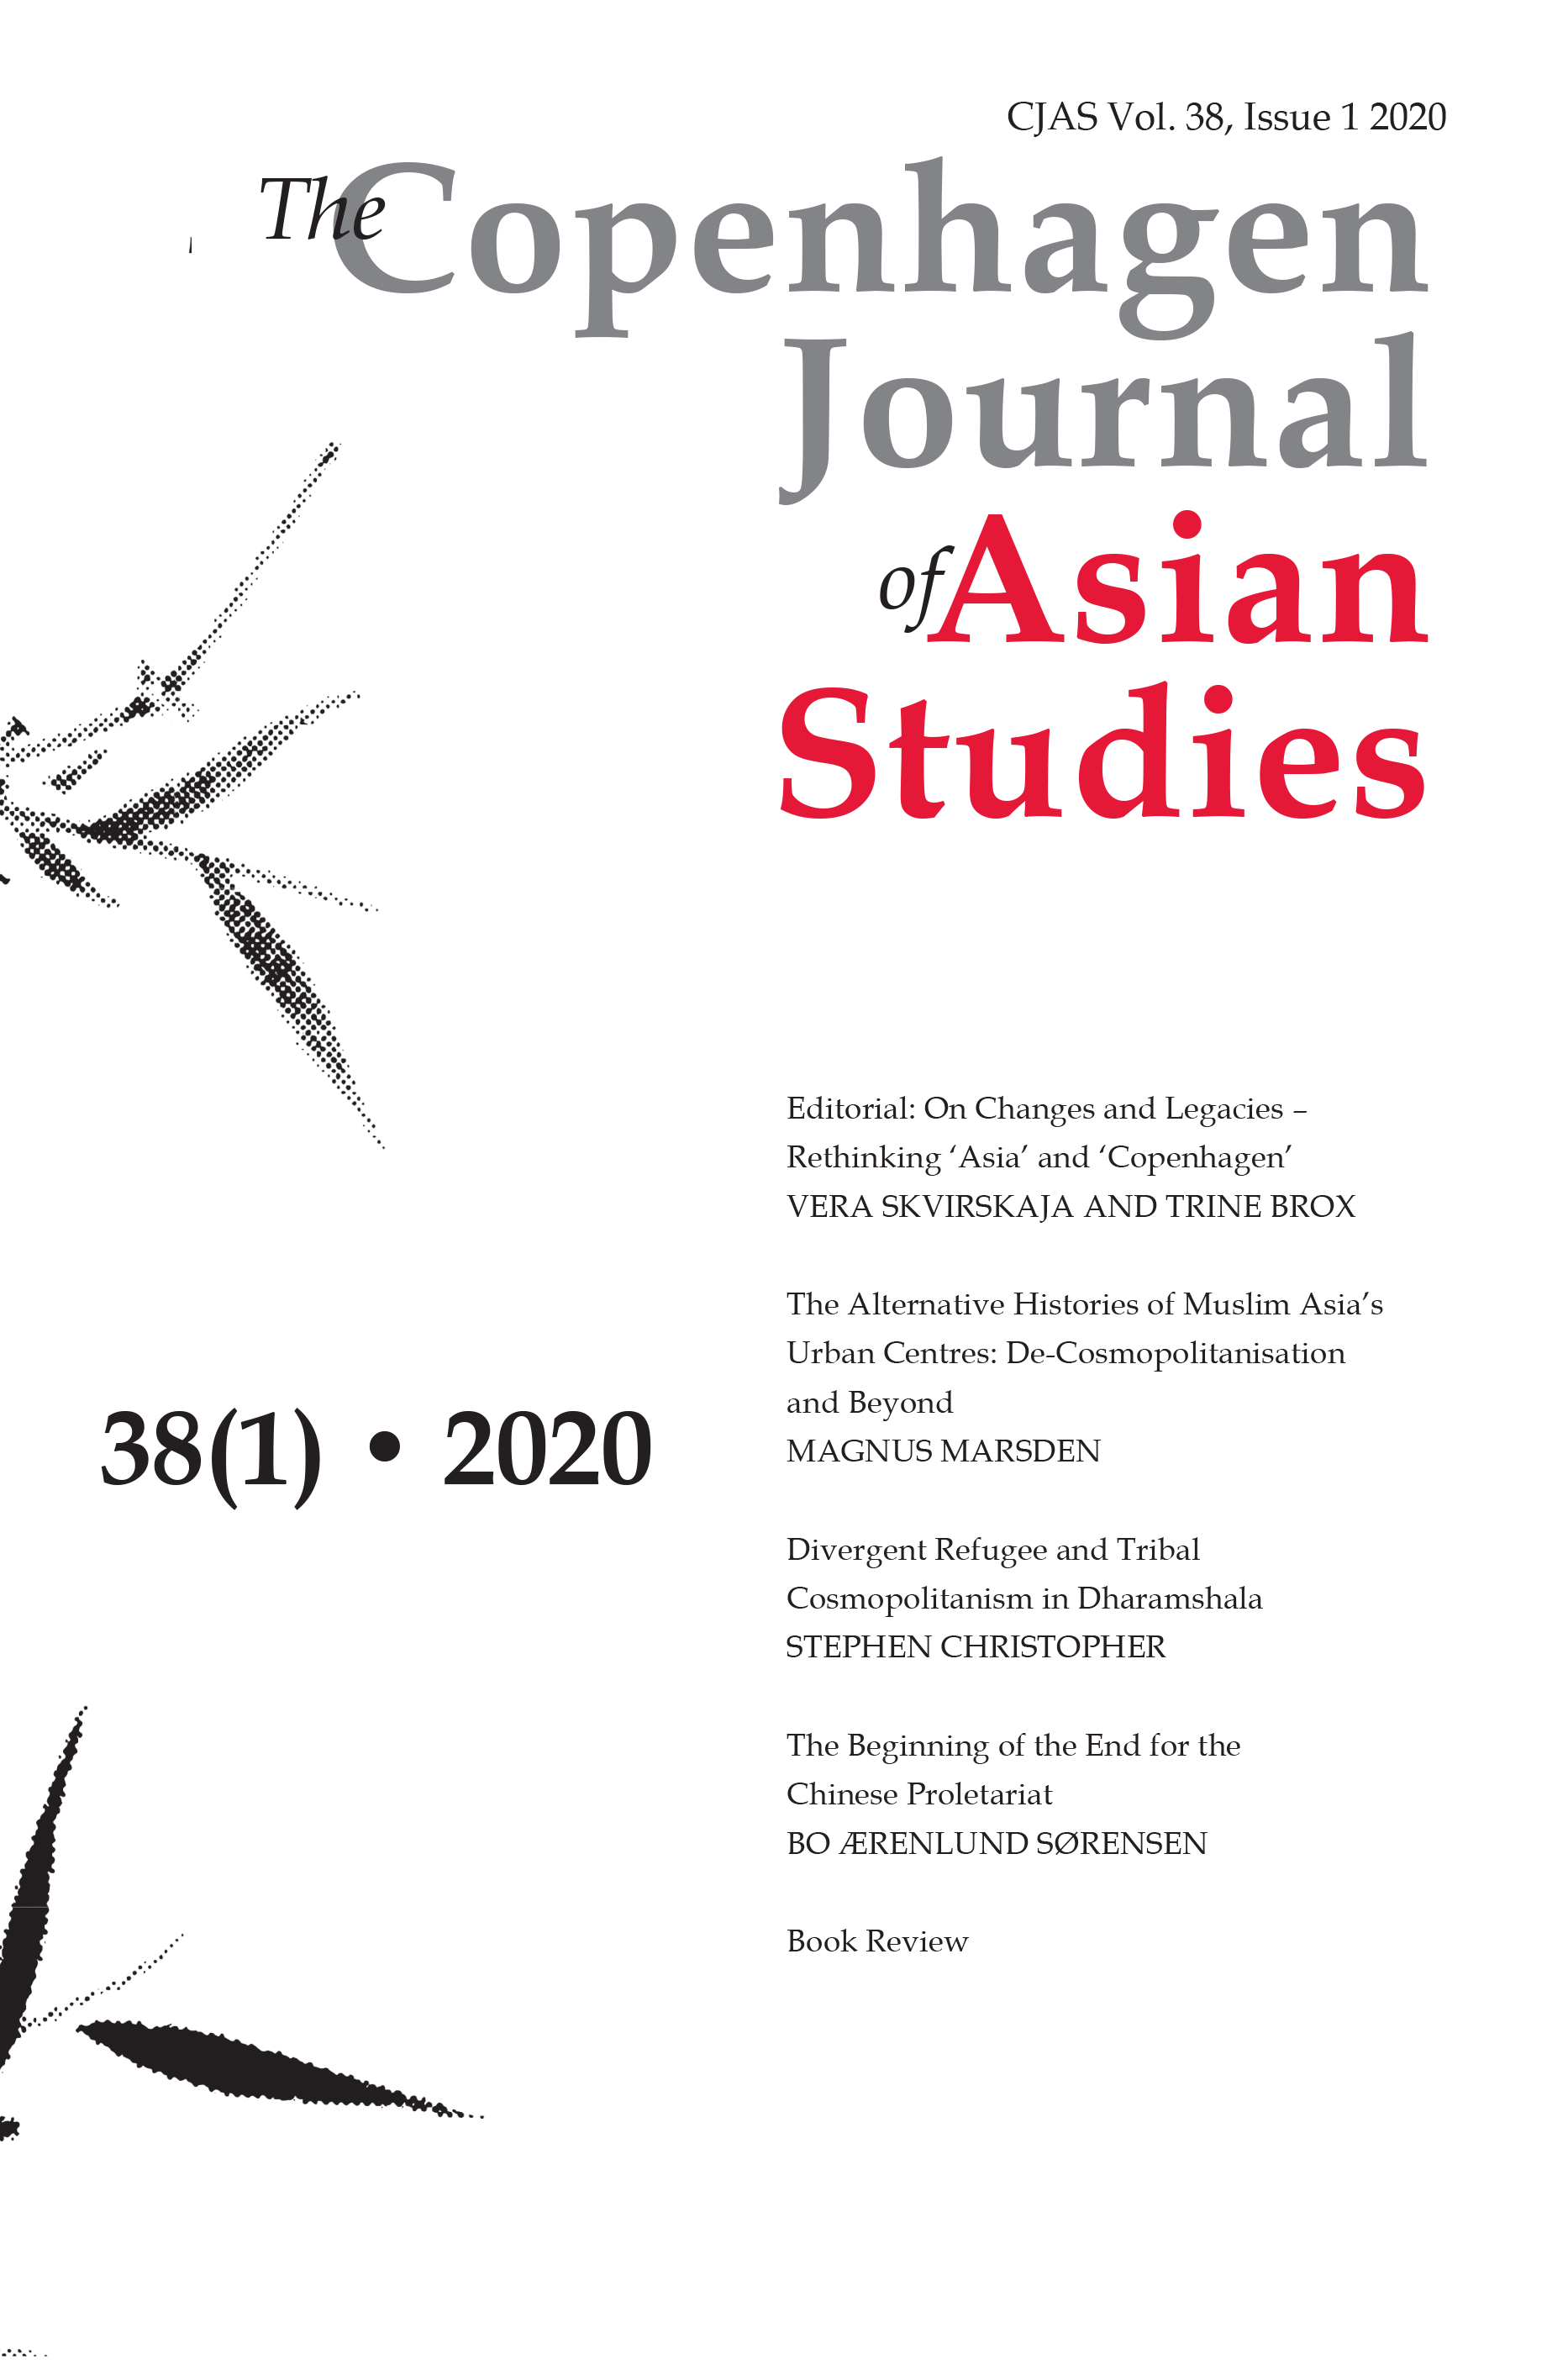 Copenhagen Journal of Asian Studies Vol. 38, Issue 1, 2020